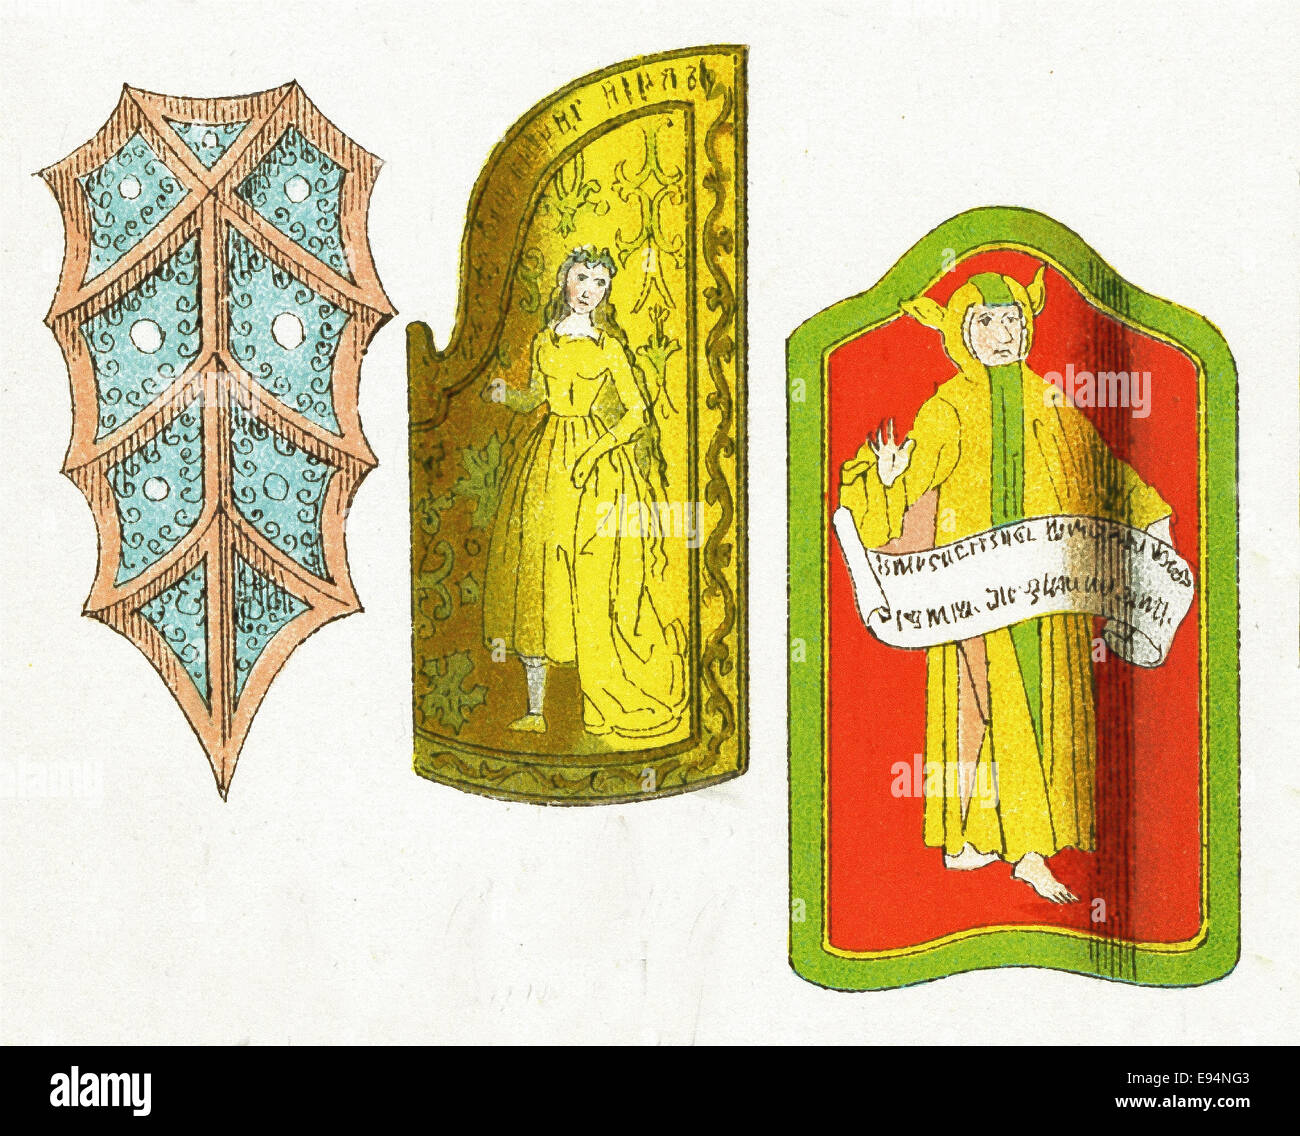 The medieval weapons from around A.D. 1400 represented here are three shields. The illustration dates to 1882. - Stock Image